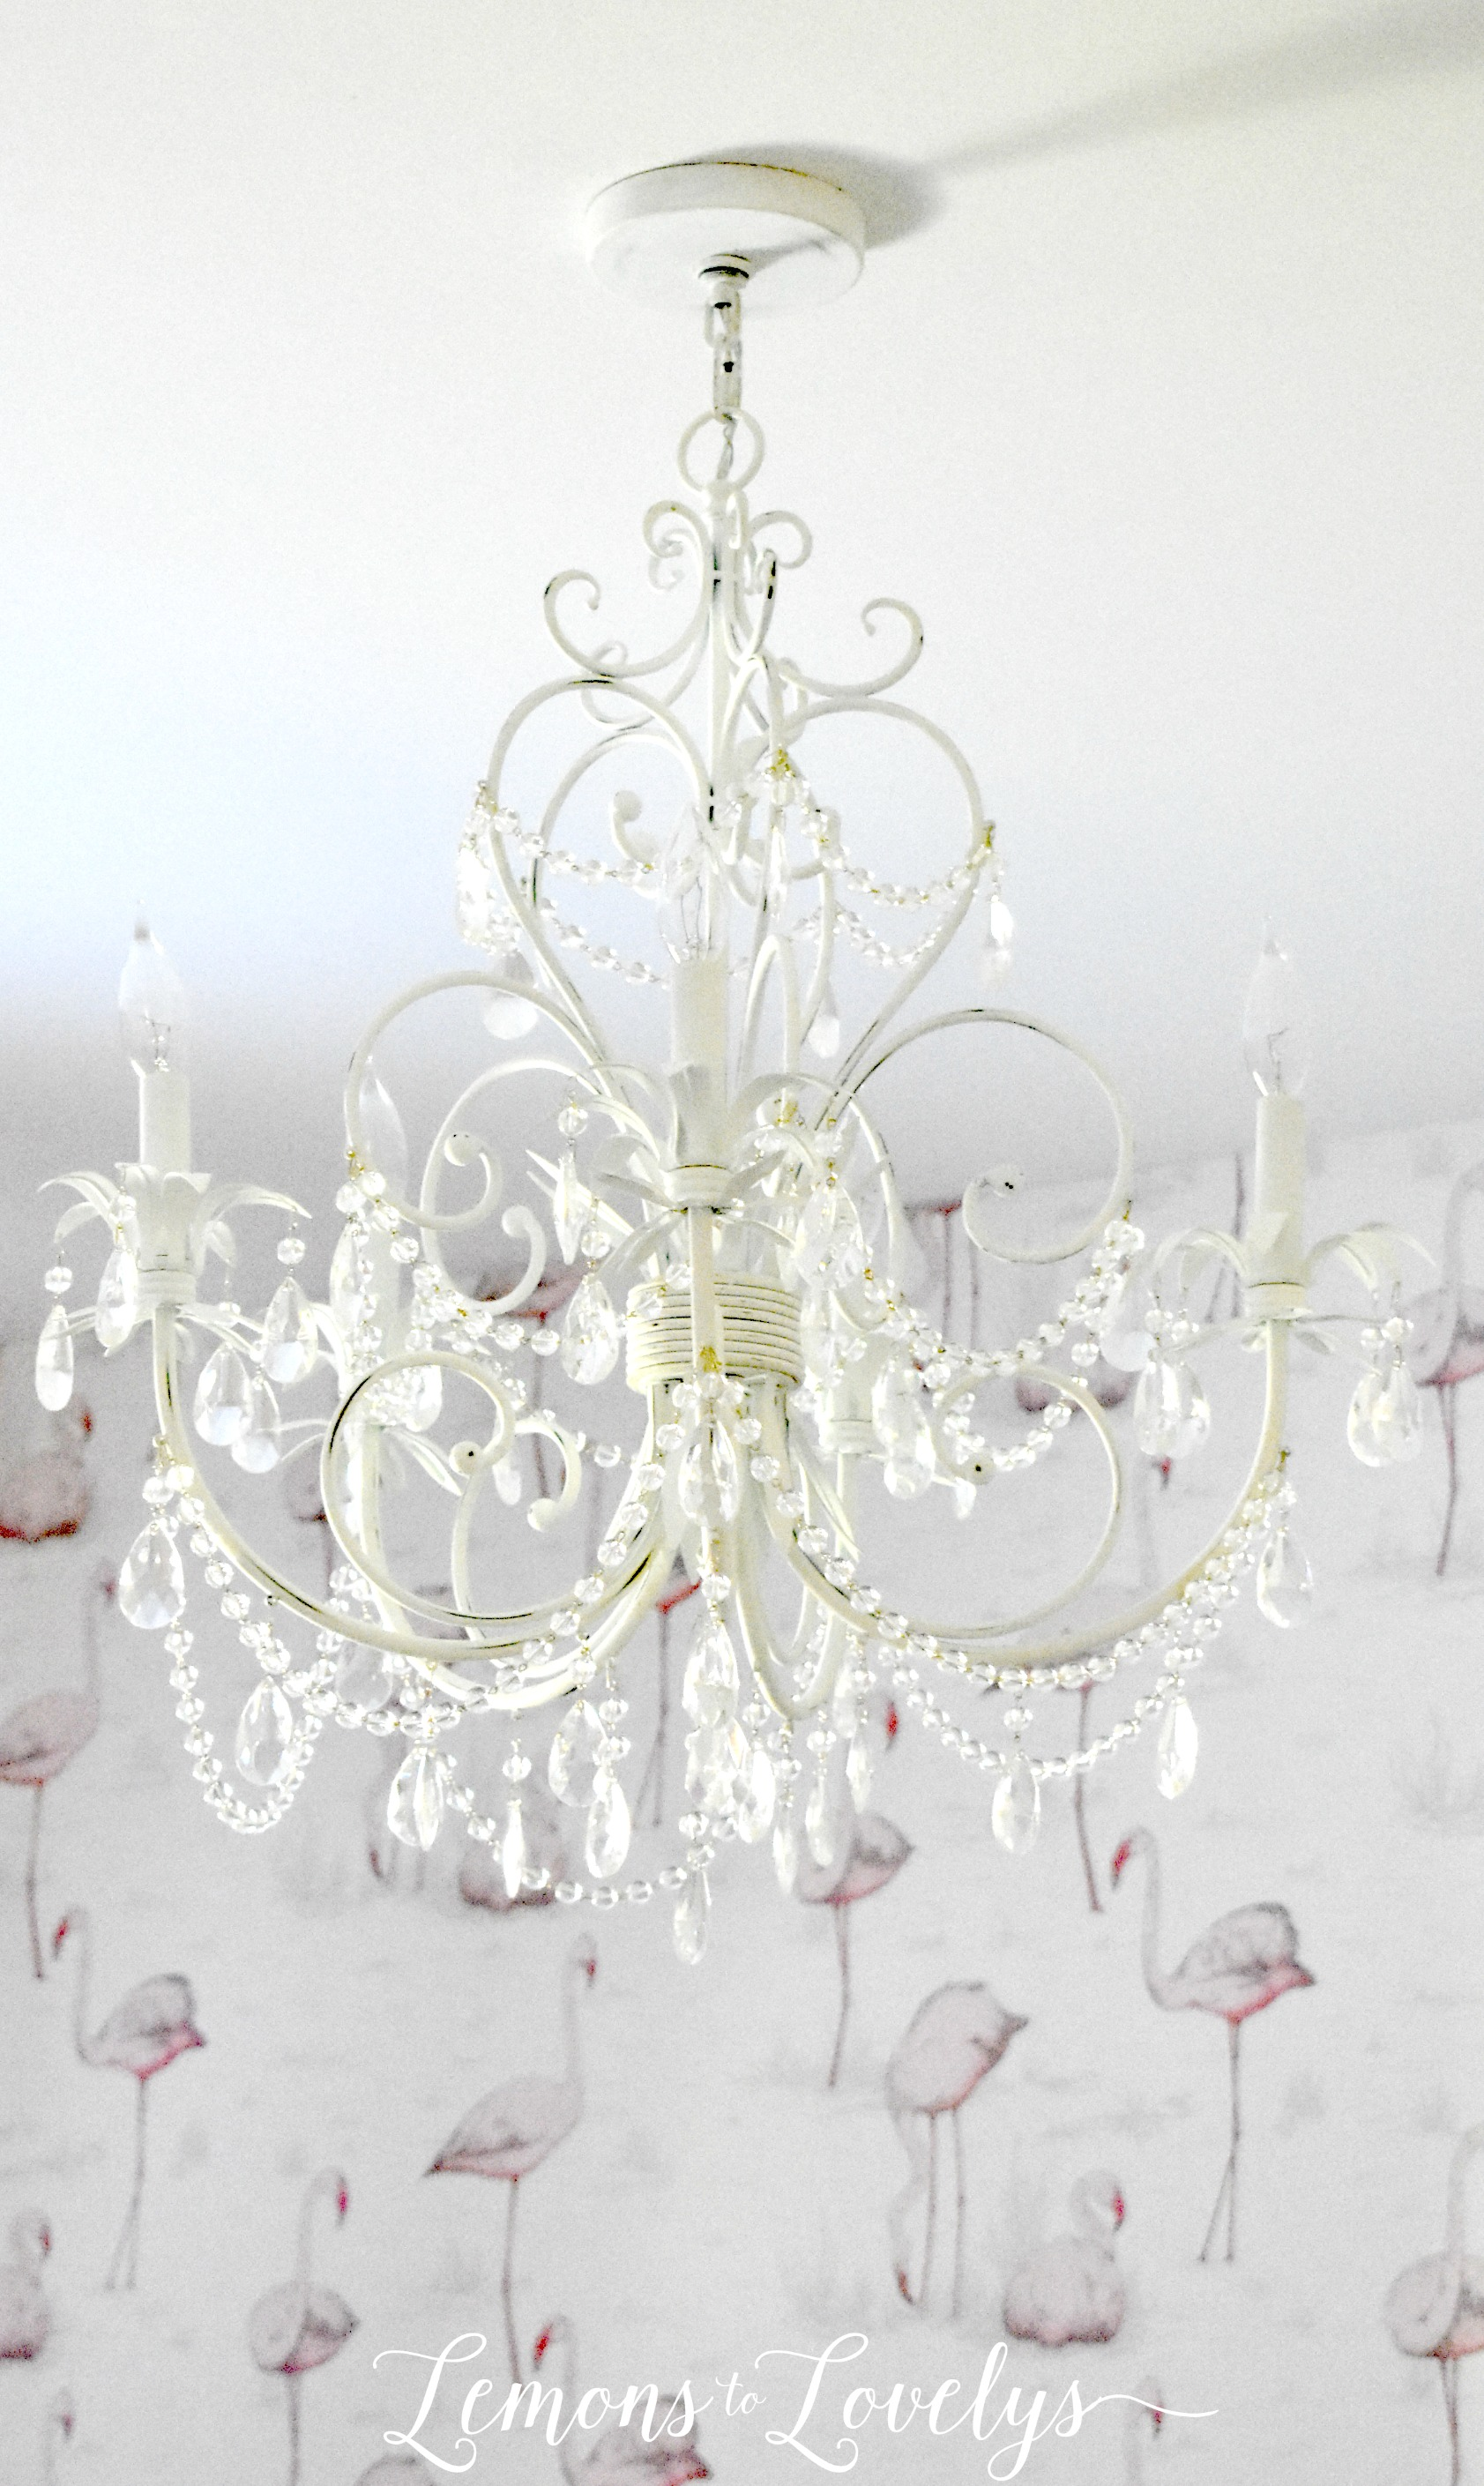 Charming Baby Nursery Lighting From Lamps Plus More Photos On Www.lemonstolovelys.com